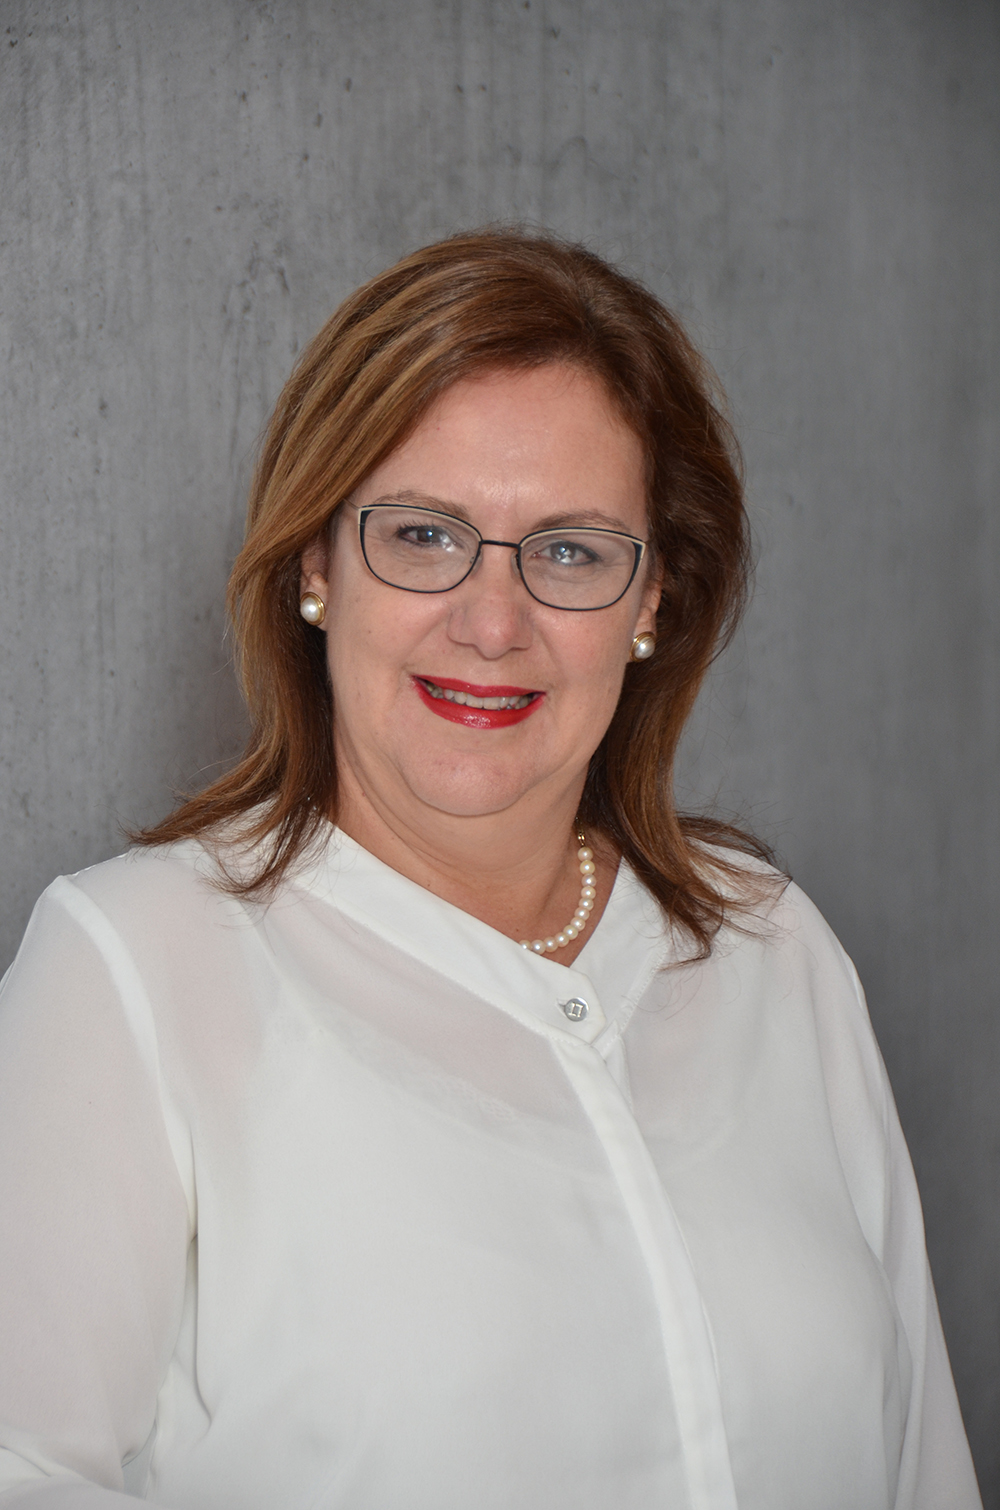 Dr Marda Horn is a senior lecturer in the Department of Private Law in the Faculty of Law.